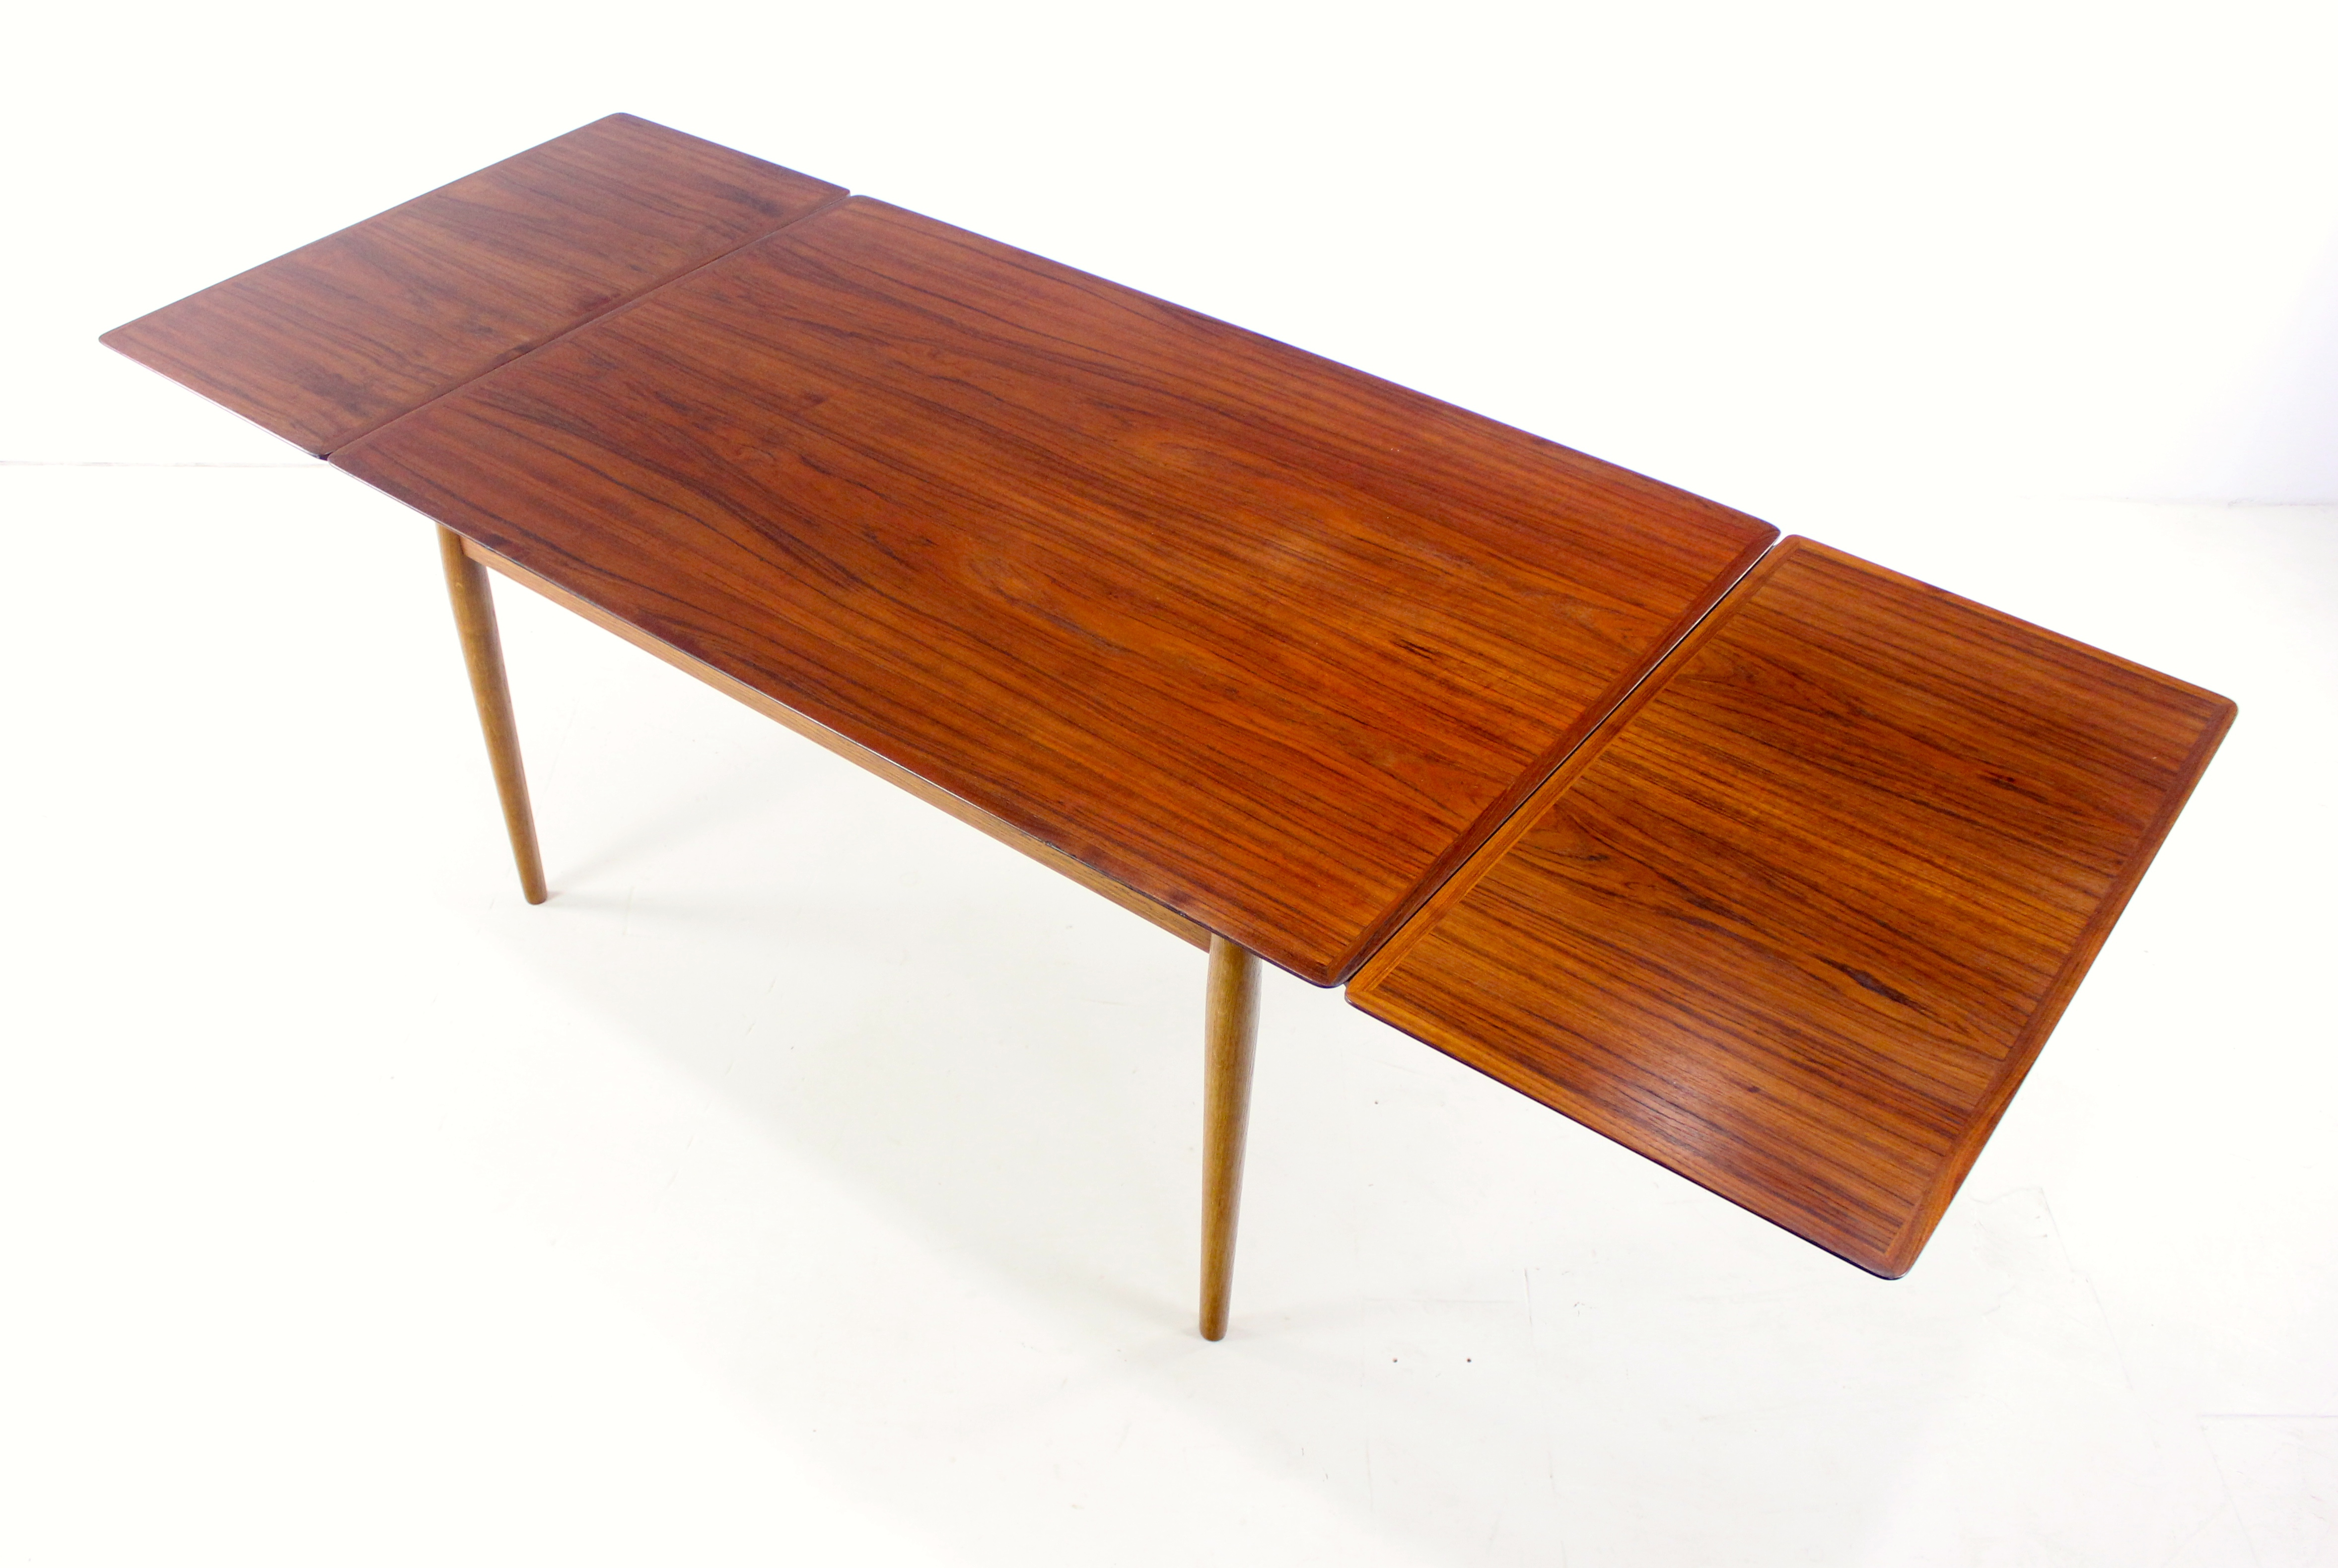 rosewood leaf products galaxiemodern modern danish scandinavian teak draw drawleaf midcentury denmark dining walnut table